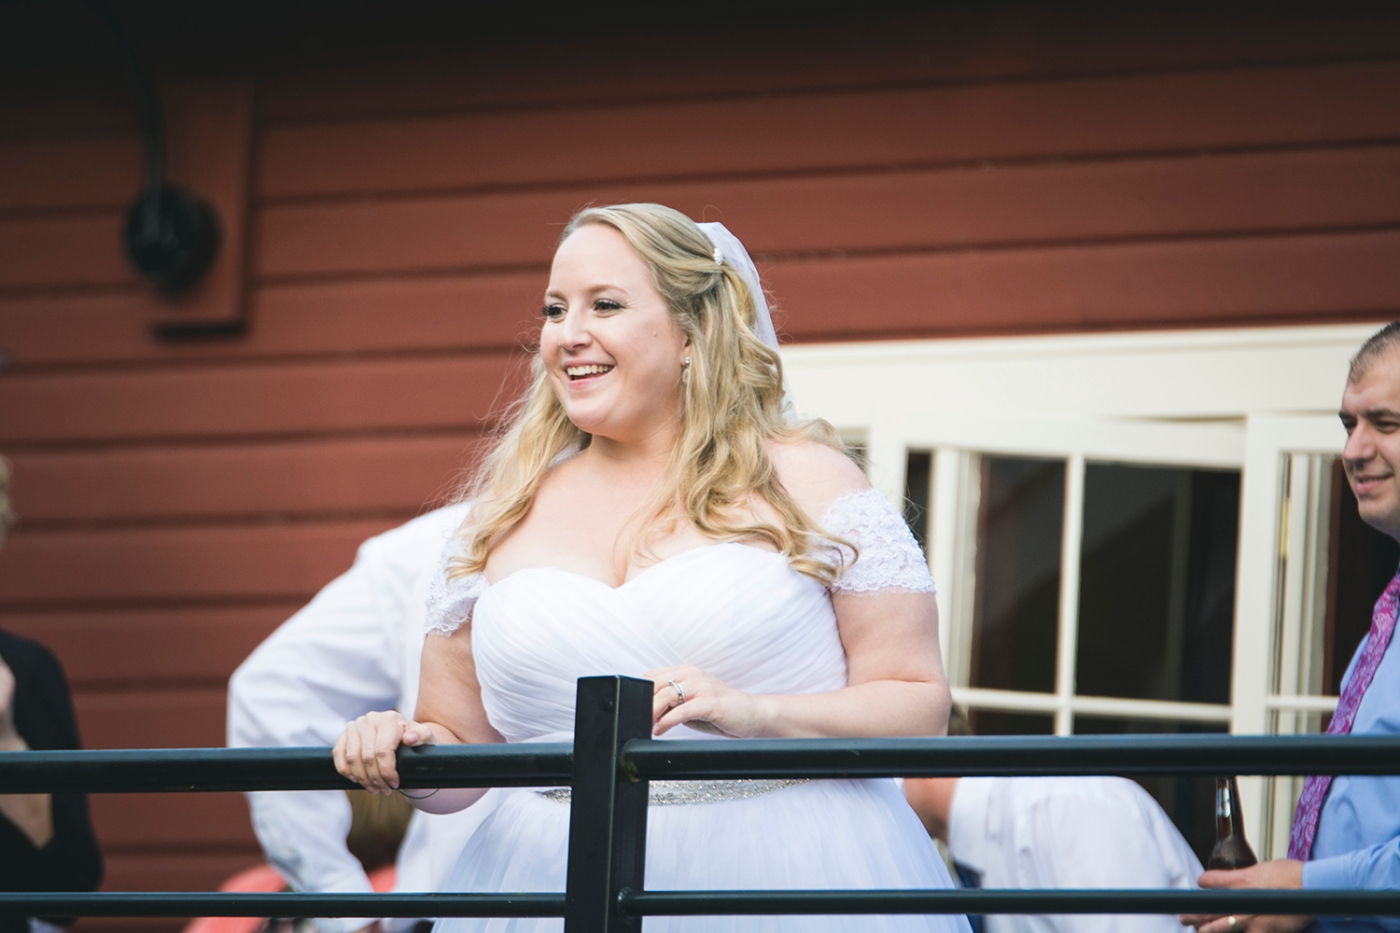 Jane_Sp_SEATTLE_photography_KaTie_and_Steve_2016_Des_Moines_Marina_Wedding_JS7_9465